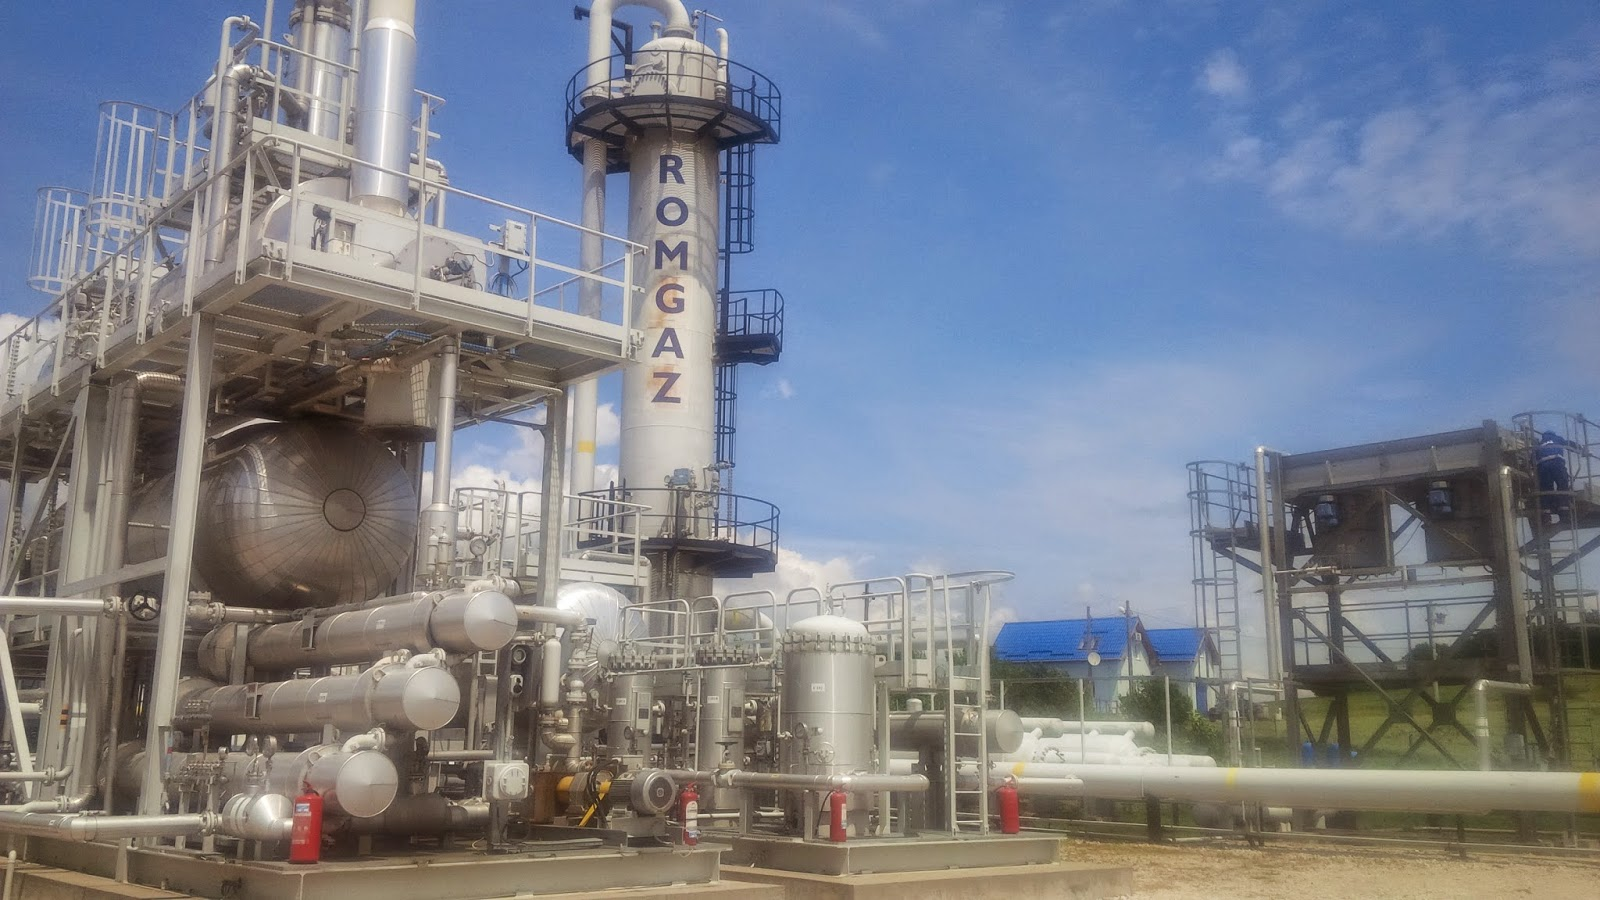 Romania: Romgaz to build SE Europe's largest gas project